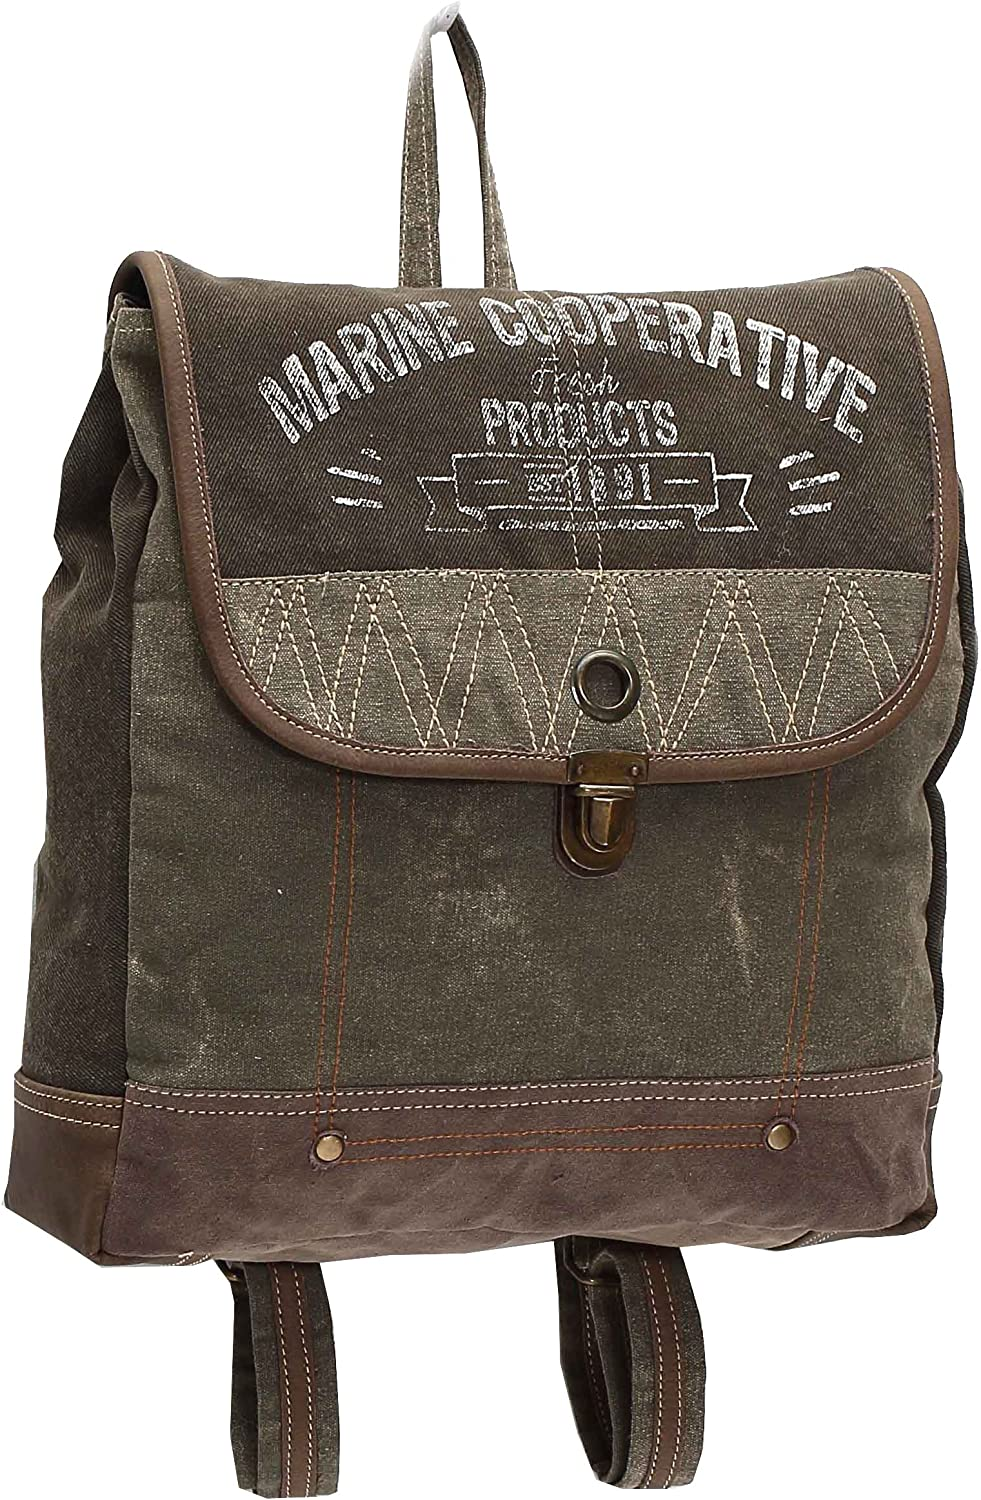 Myra Bags Marine Cooperative Upcycled Canvas Backpack Bag M1007